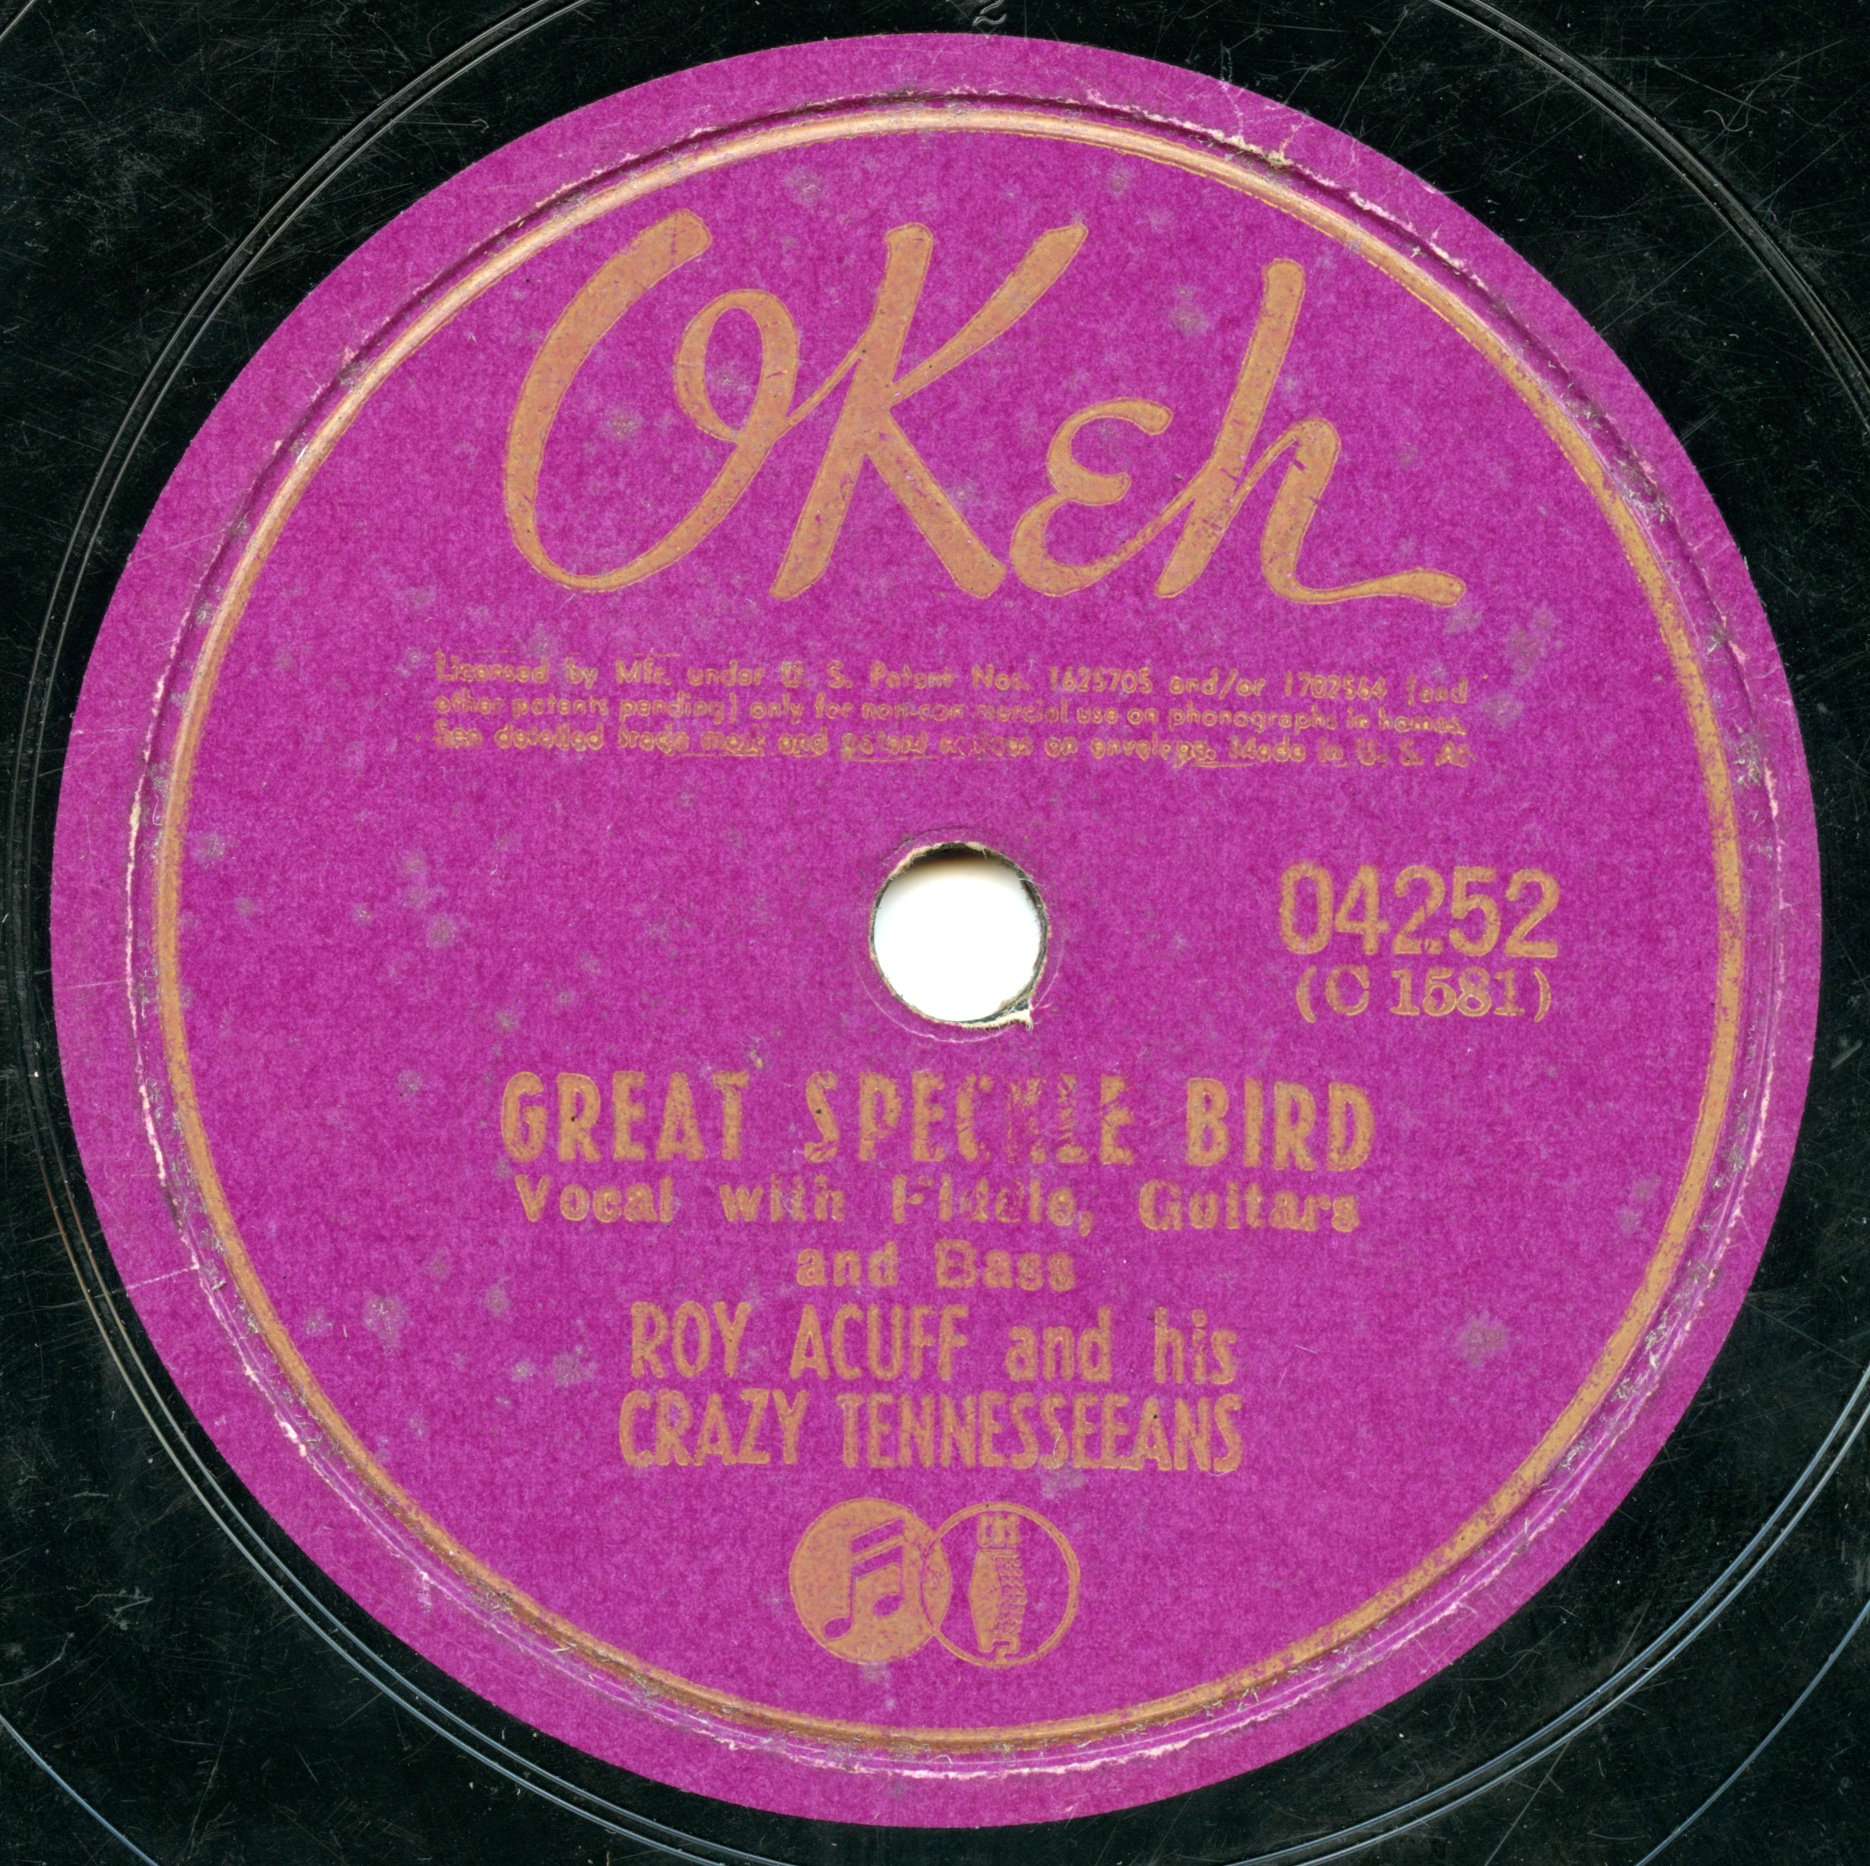 The Great Speckle Bird